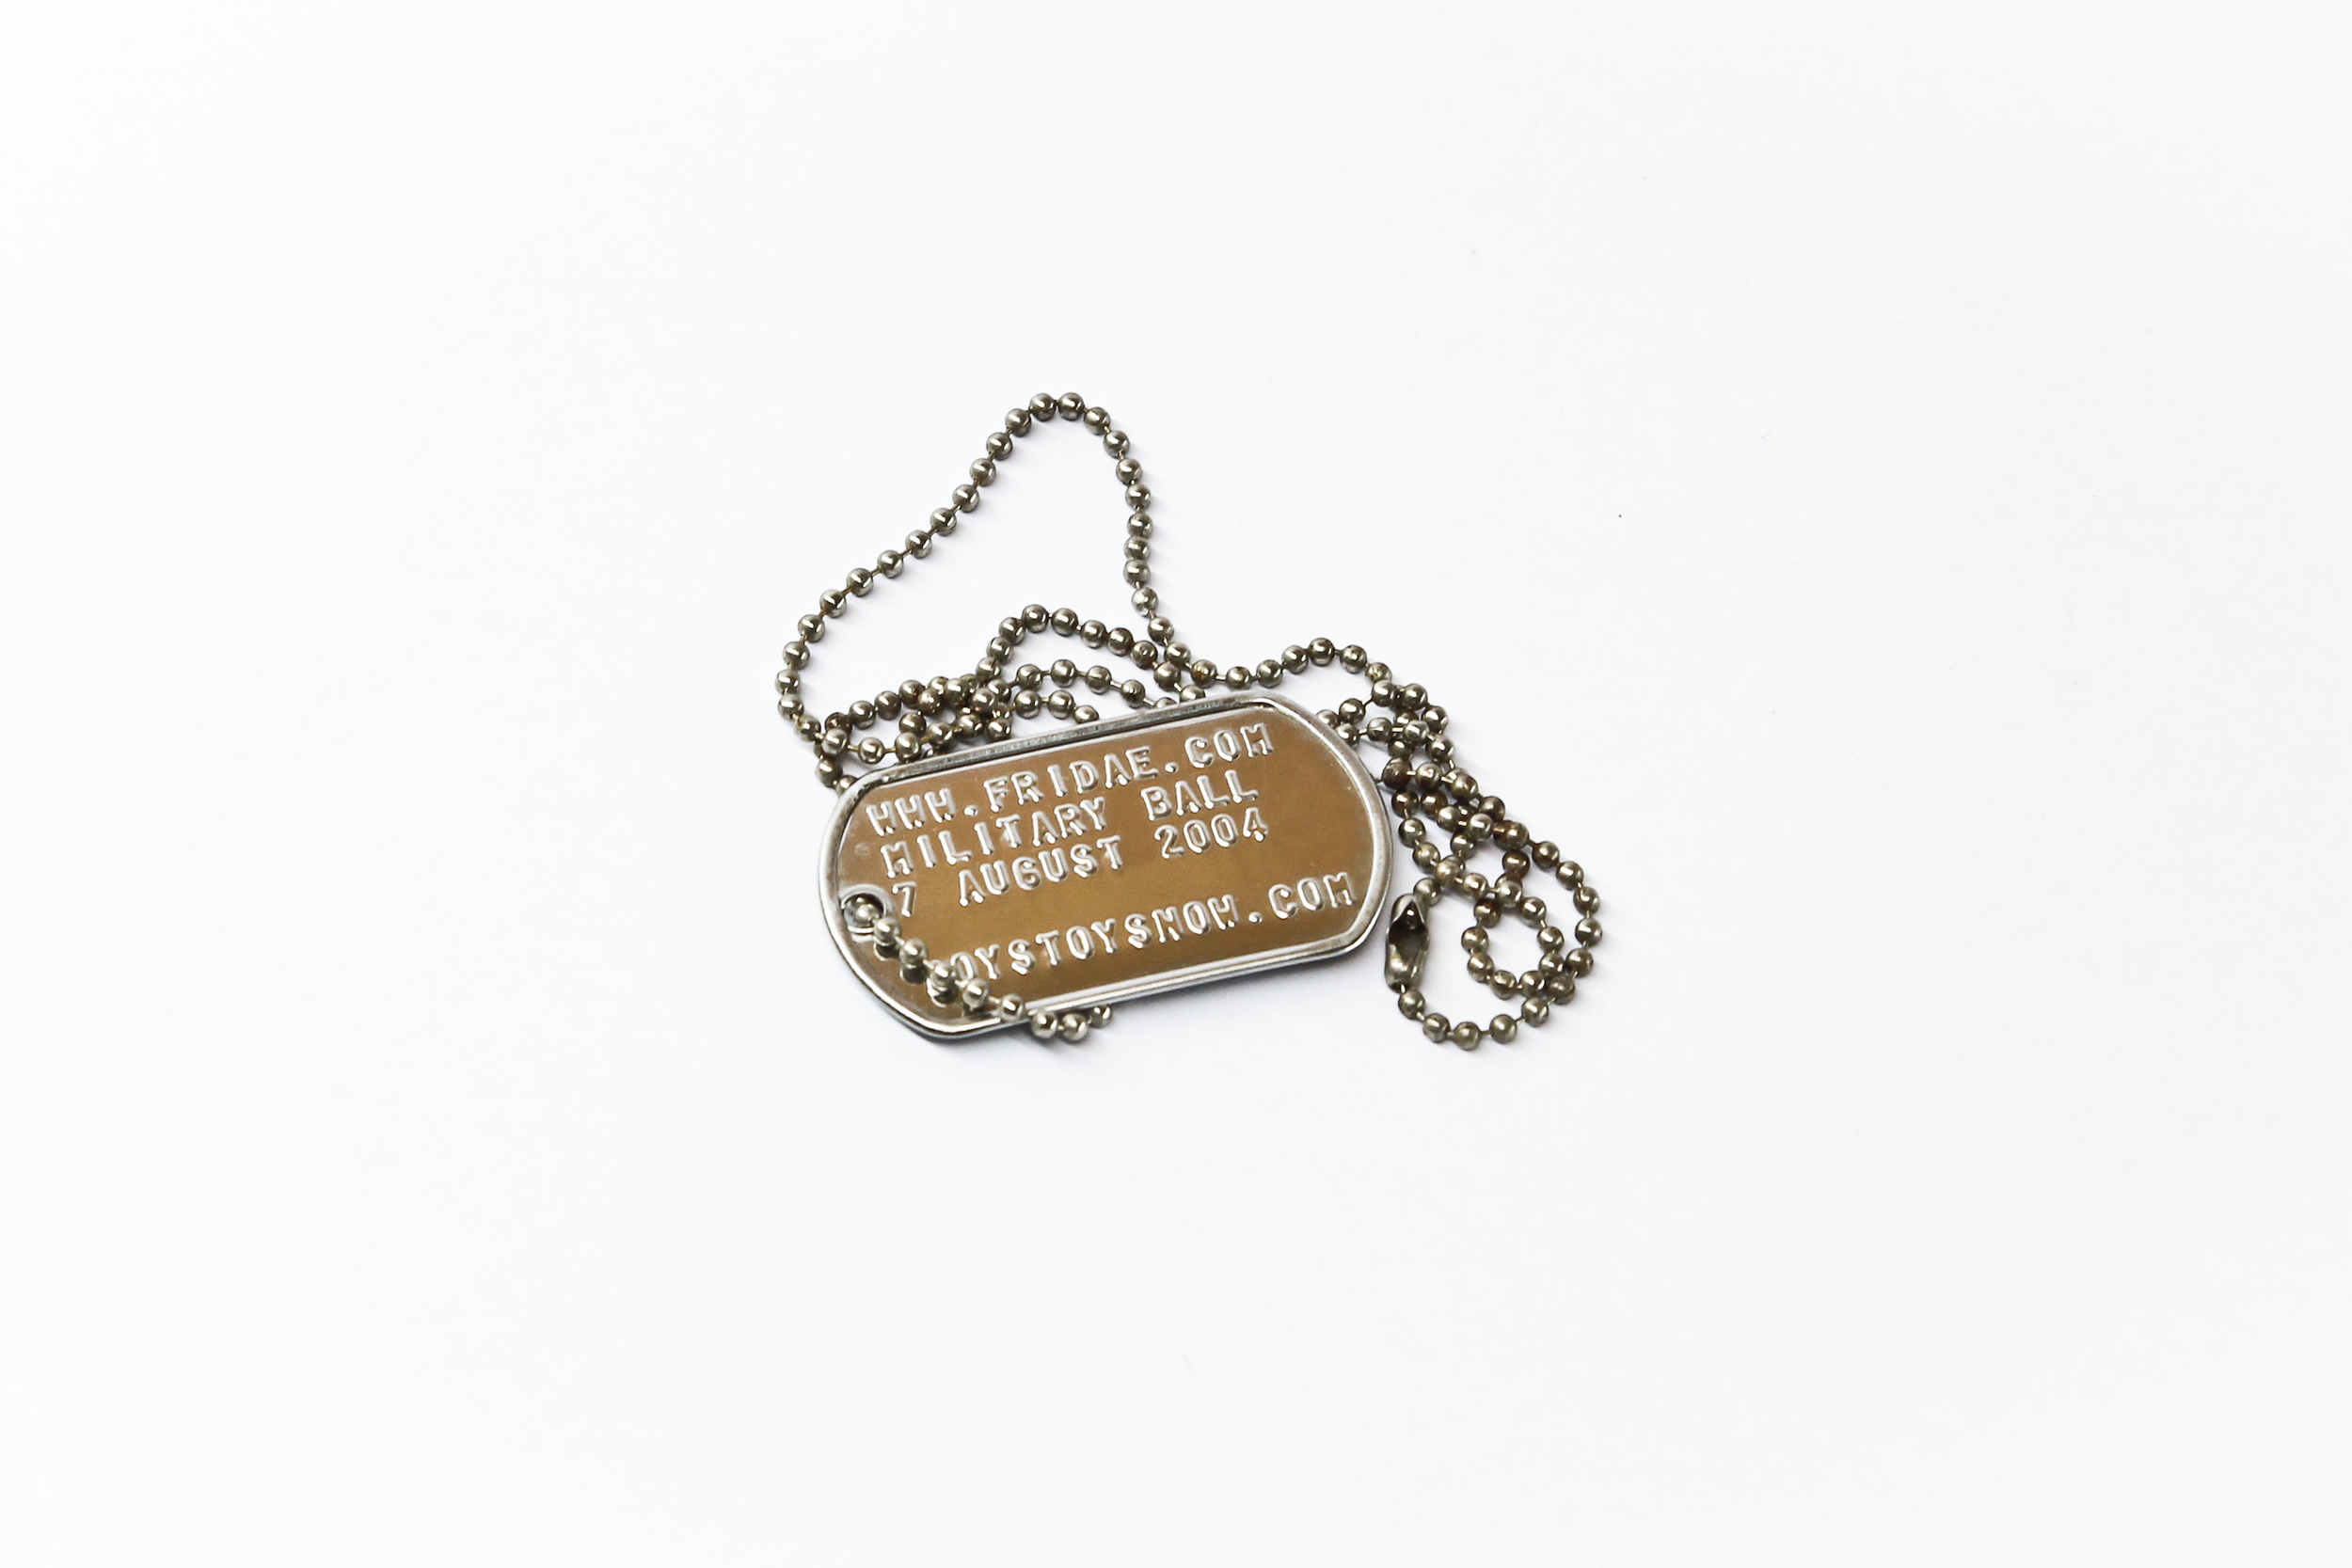 'Nation' (event) dog tag